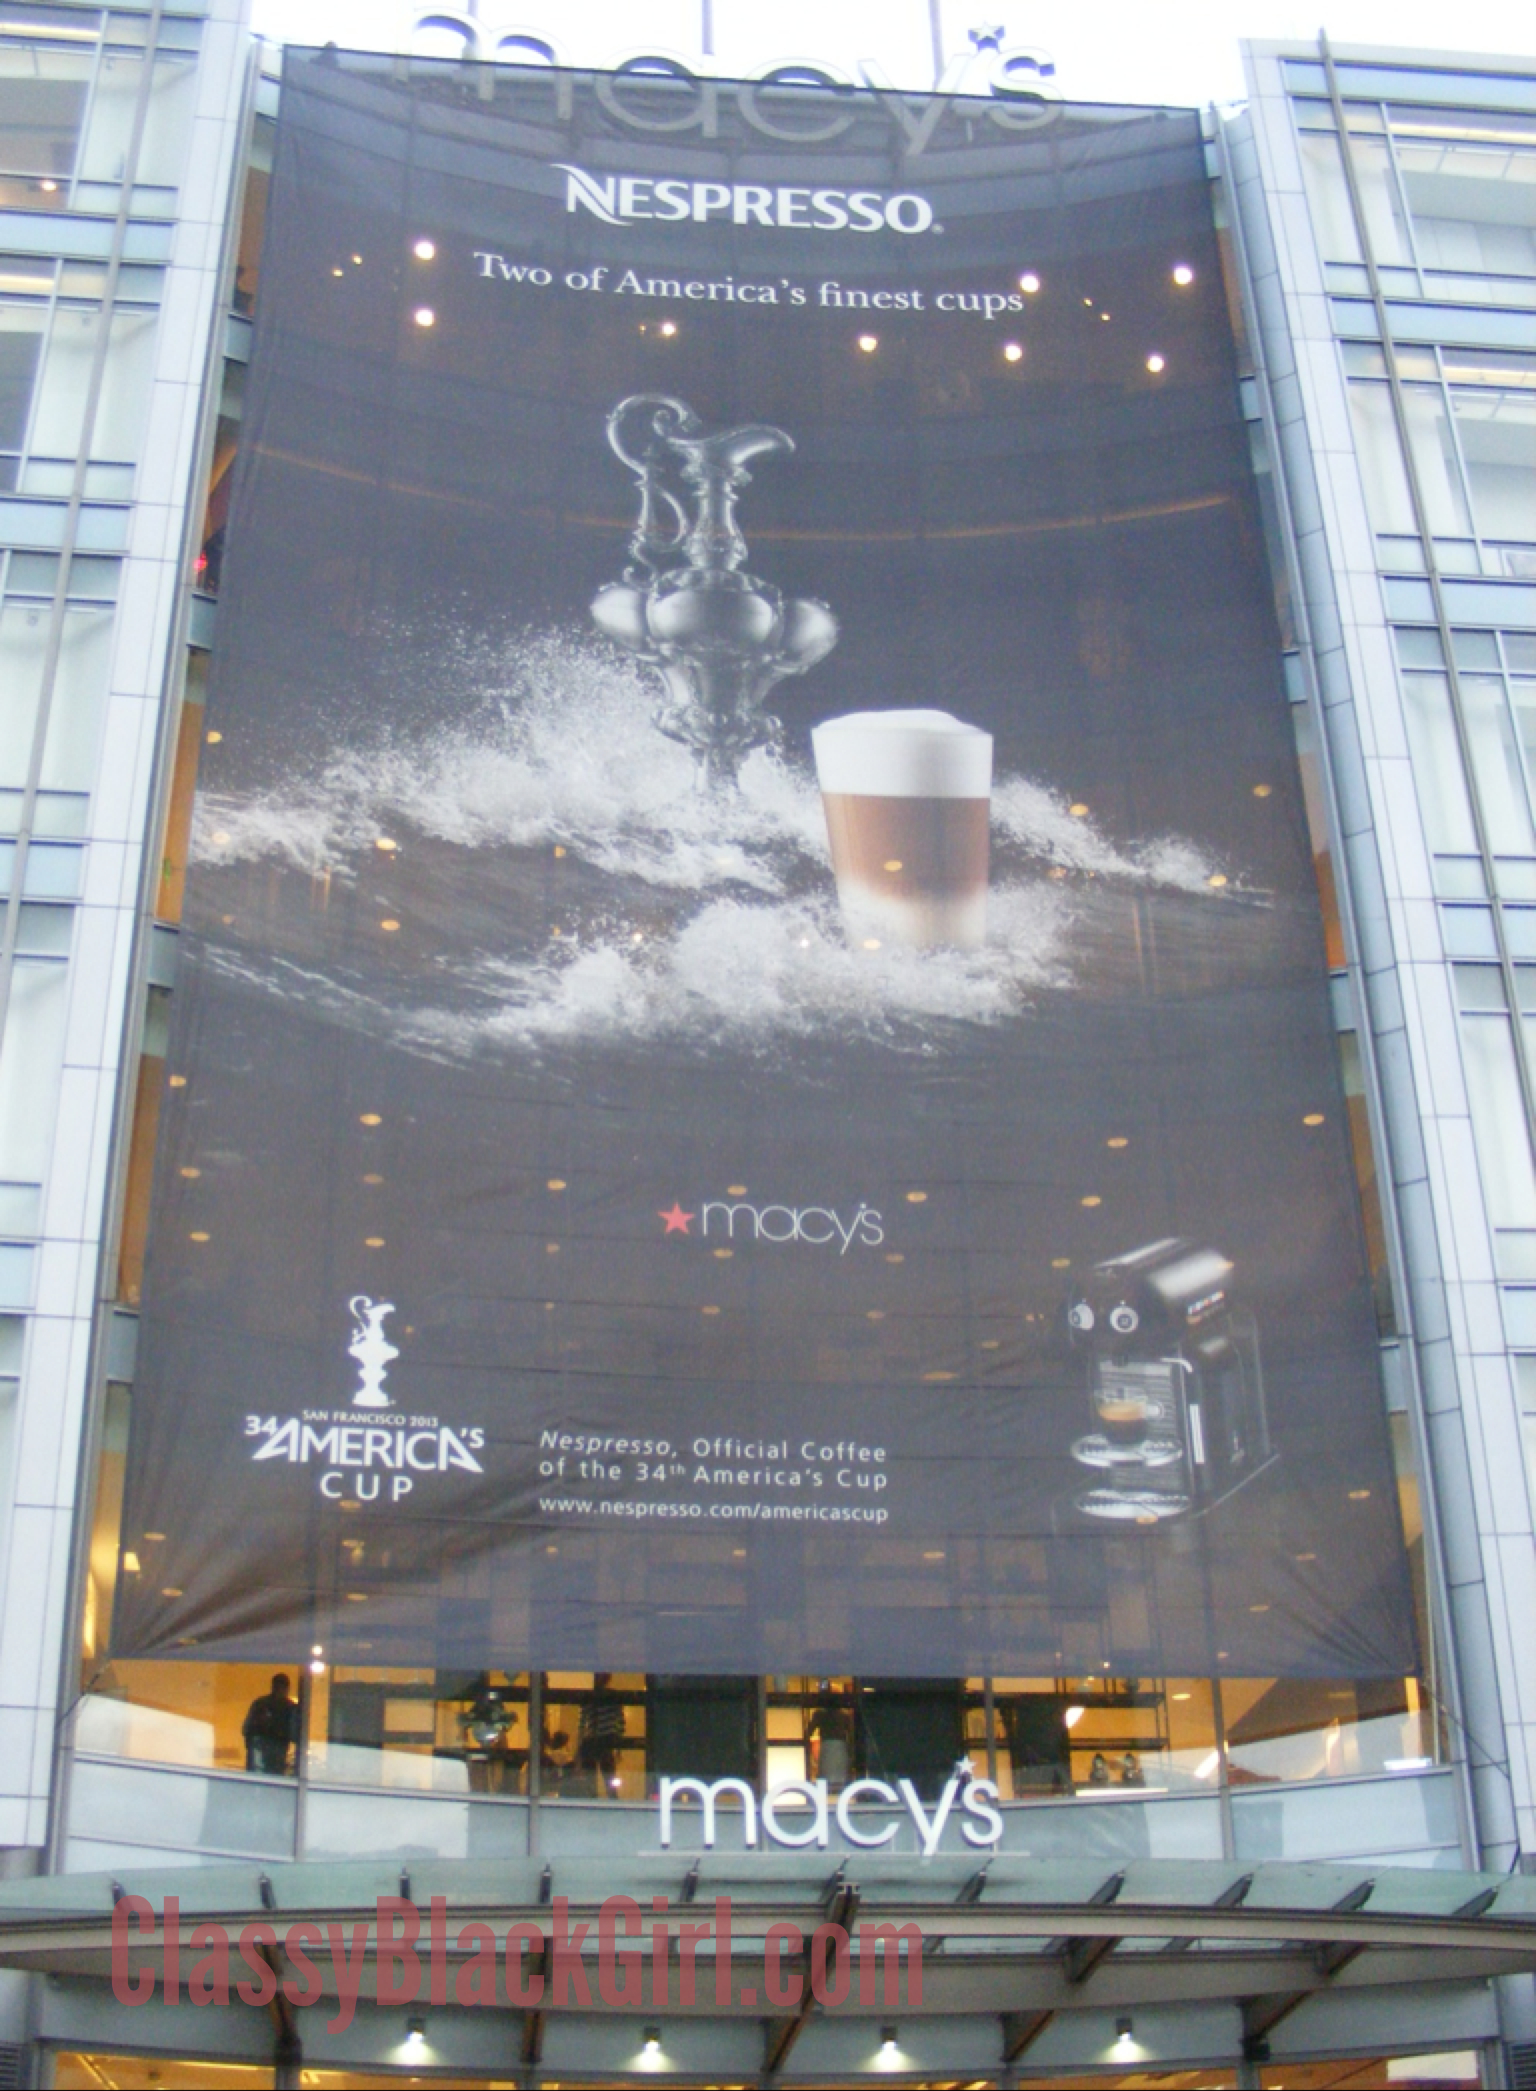 Macys Front Culinary Council Nespresso